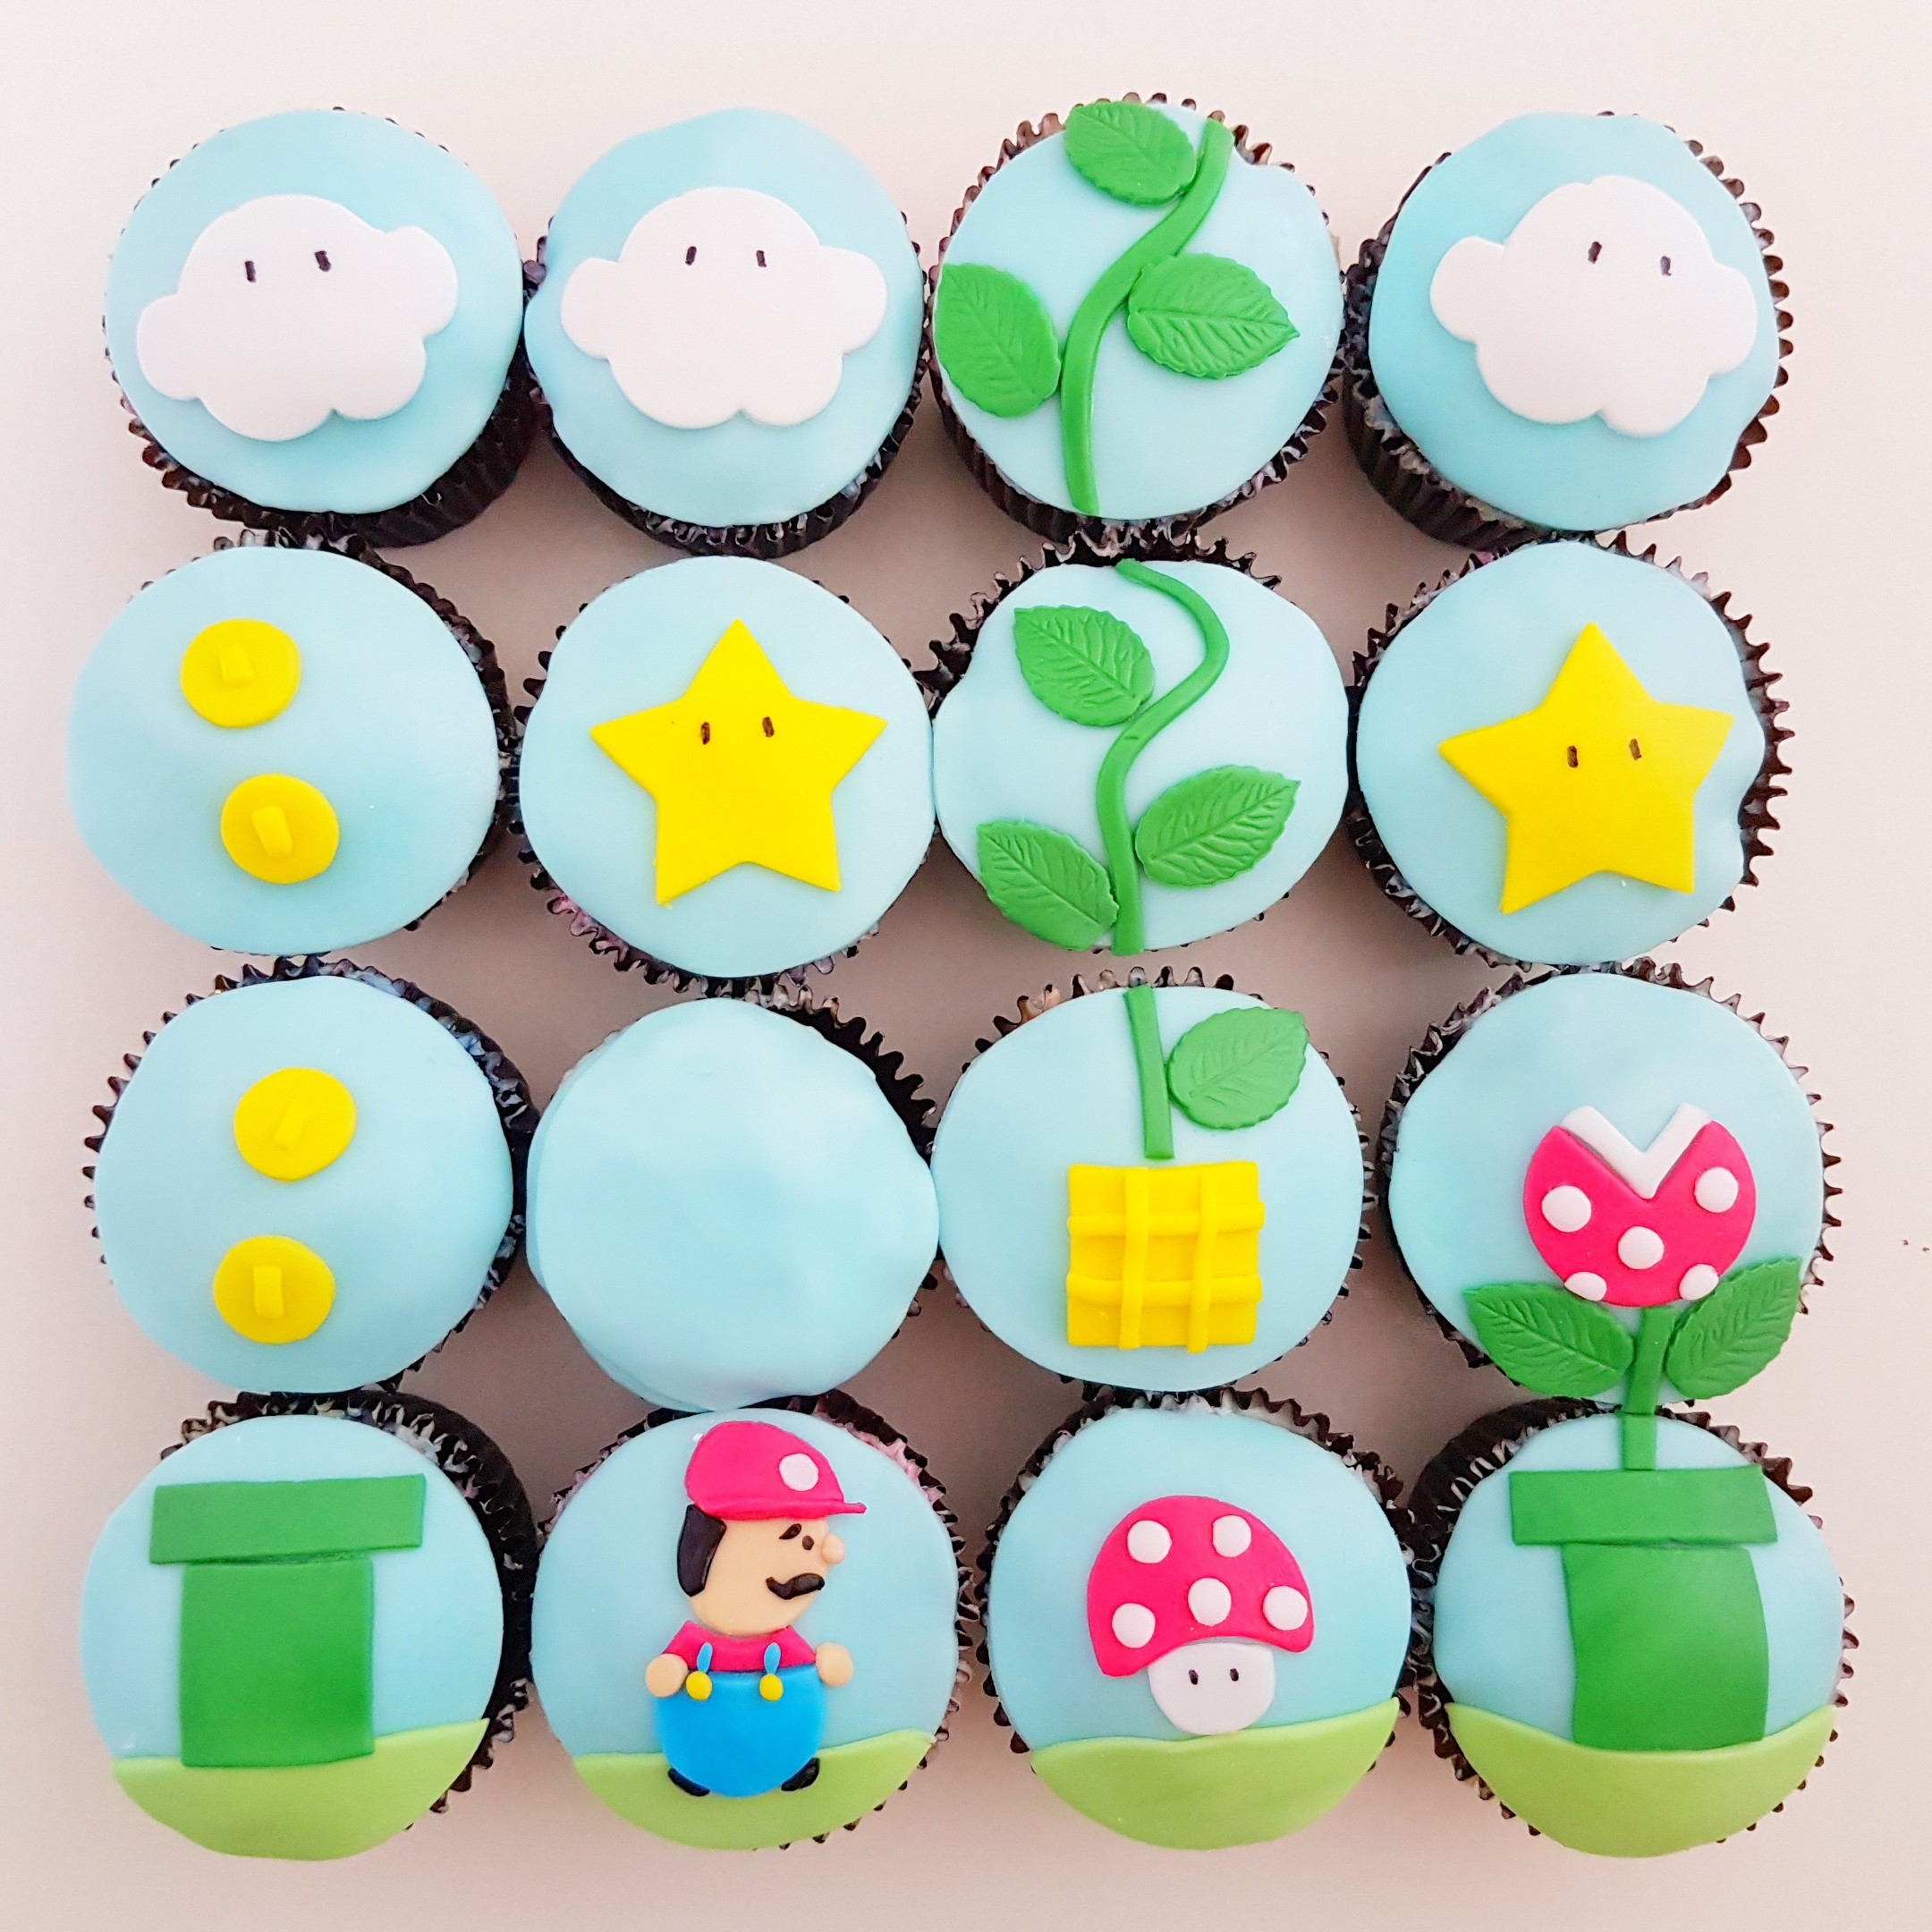 Mario Cupcakes by The Baking Experiment